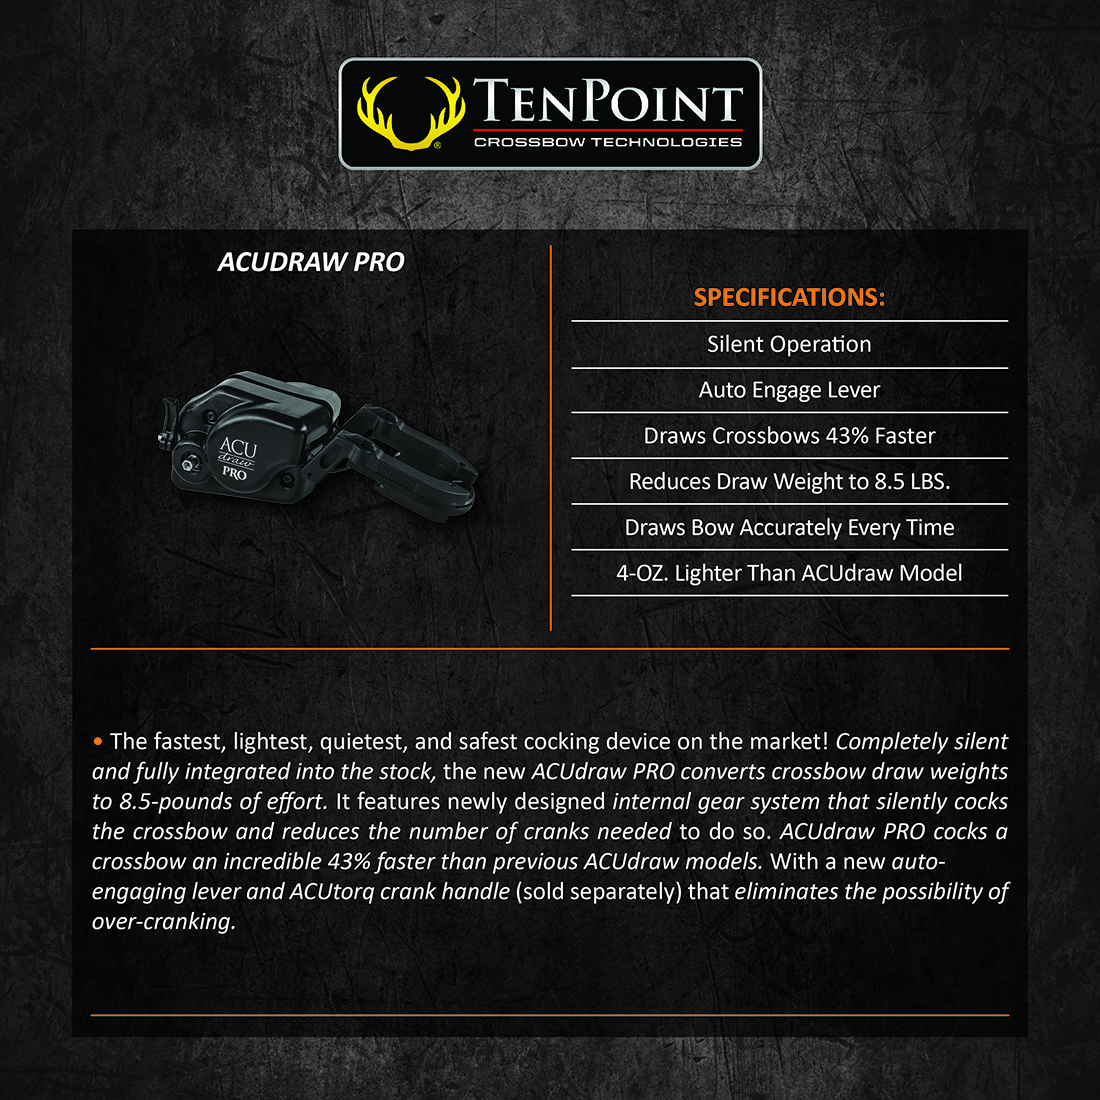 TenPoint_ACUdrawPro_Product_Description